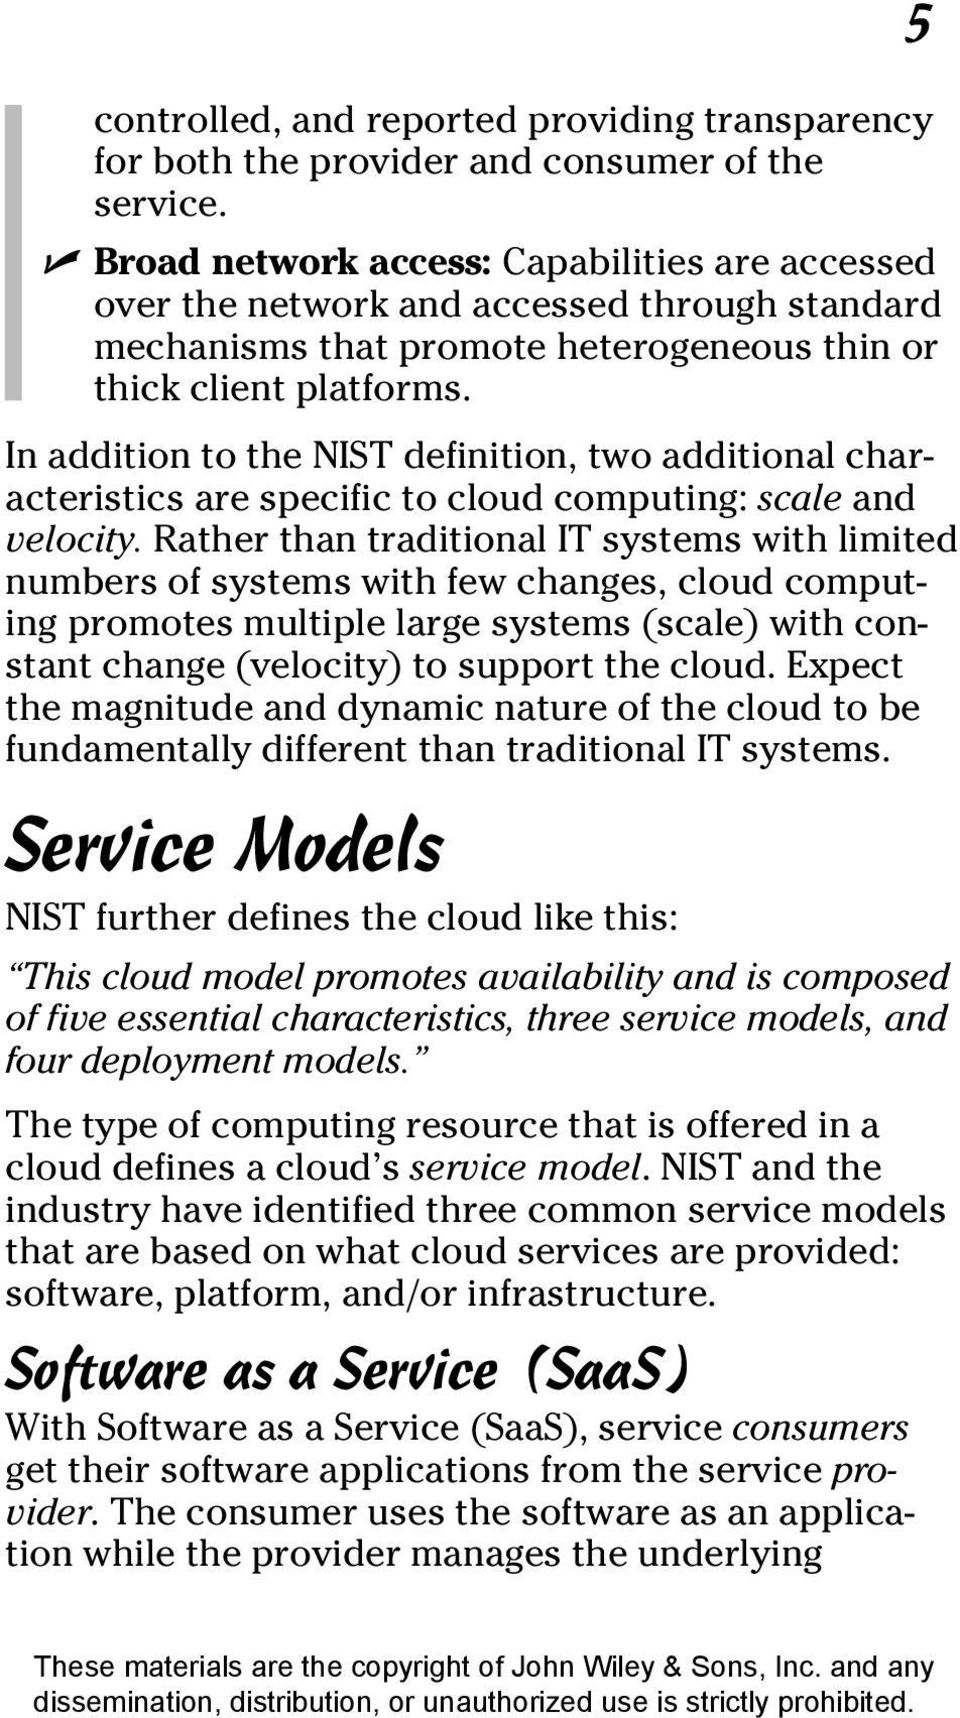 In addition to the NIST definition, two additional characteristics are specific to cloud computing: scale and velocity.